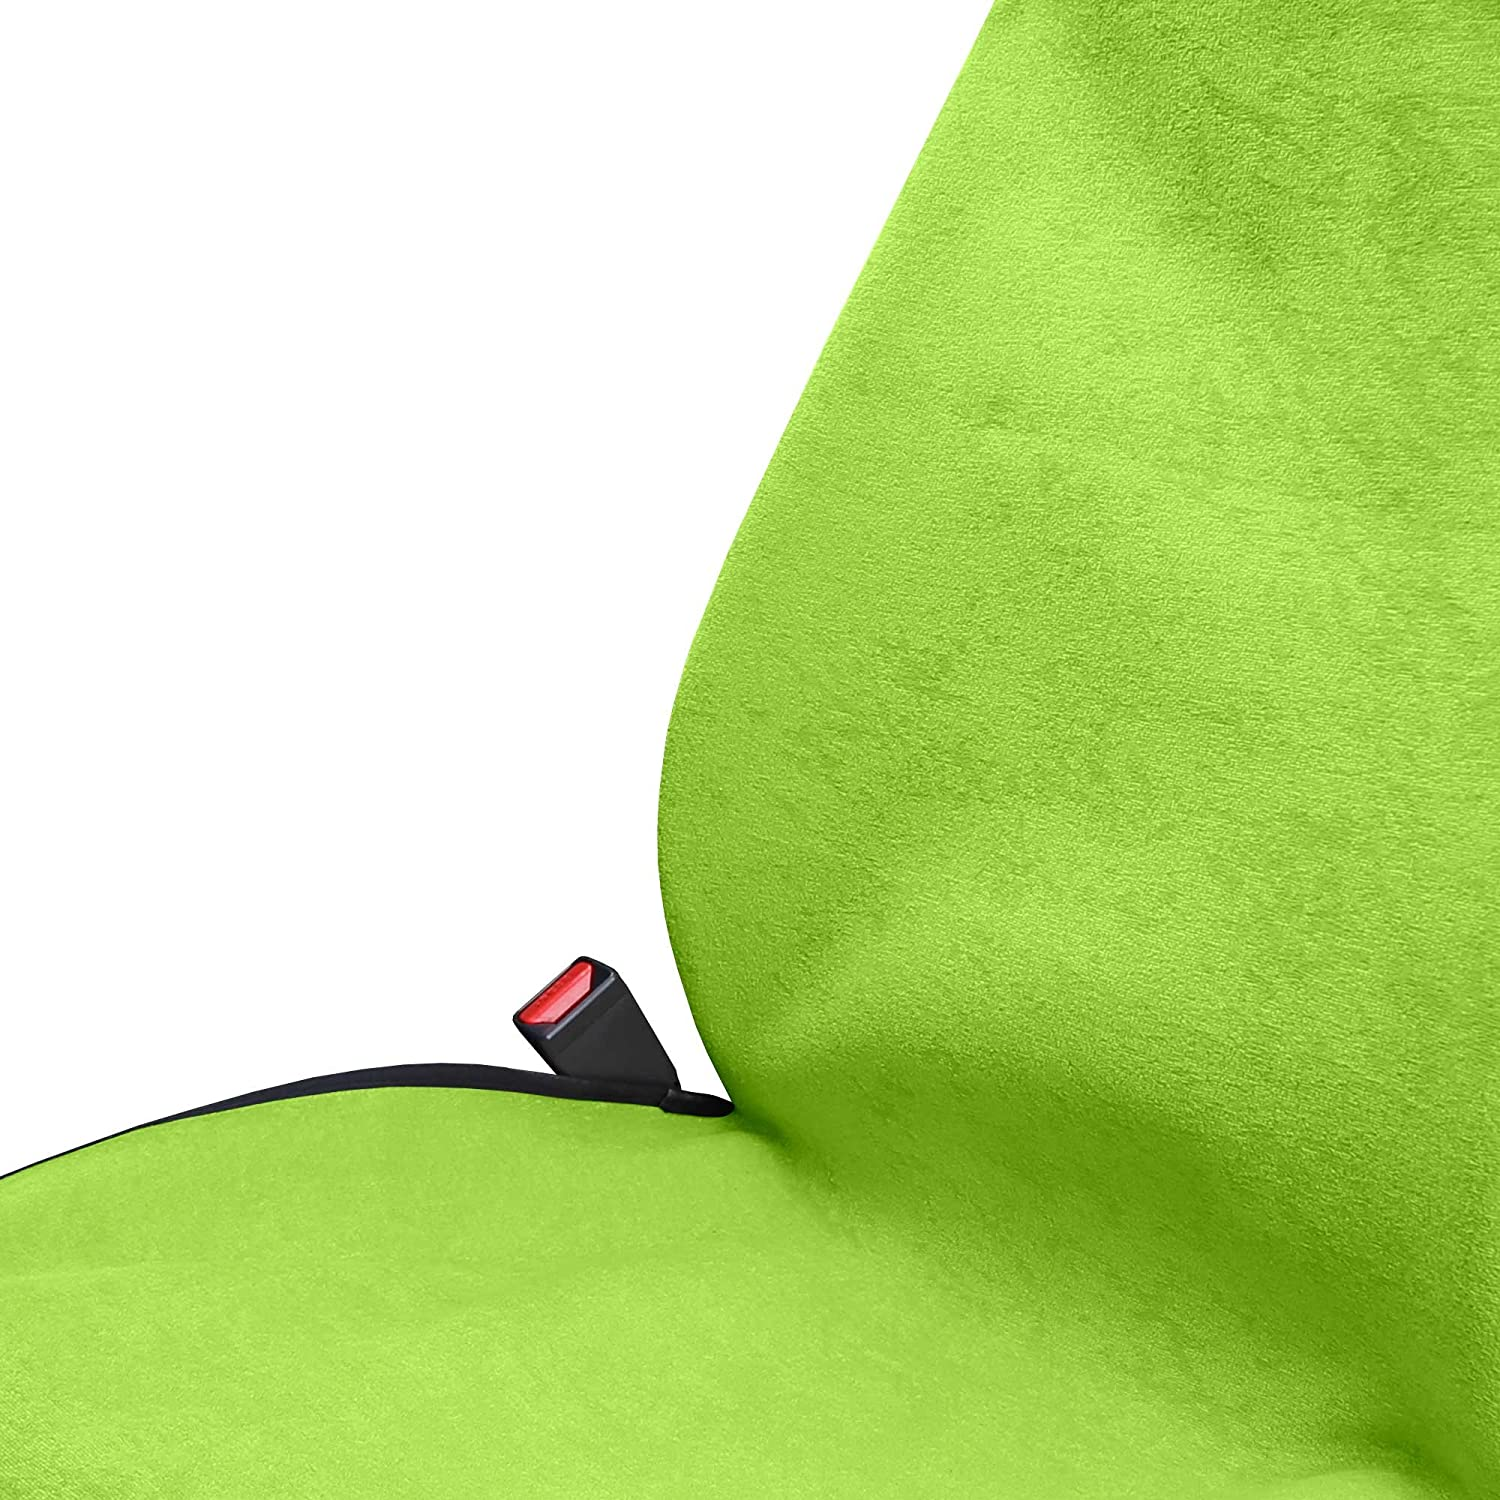 Yoga Beach Anti-Slip Backing Gym FH Group FH1006GREEN Water Resistant Quick Dry Car Seat Cover Workouts